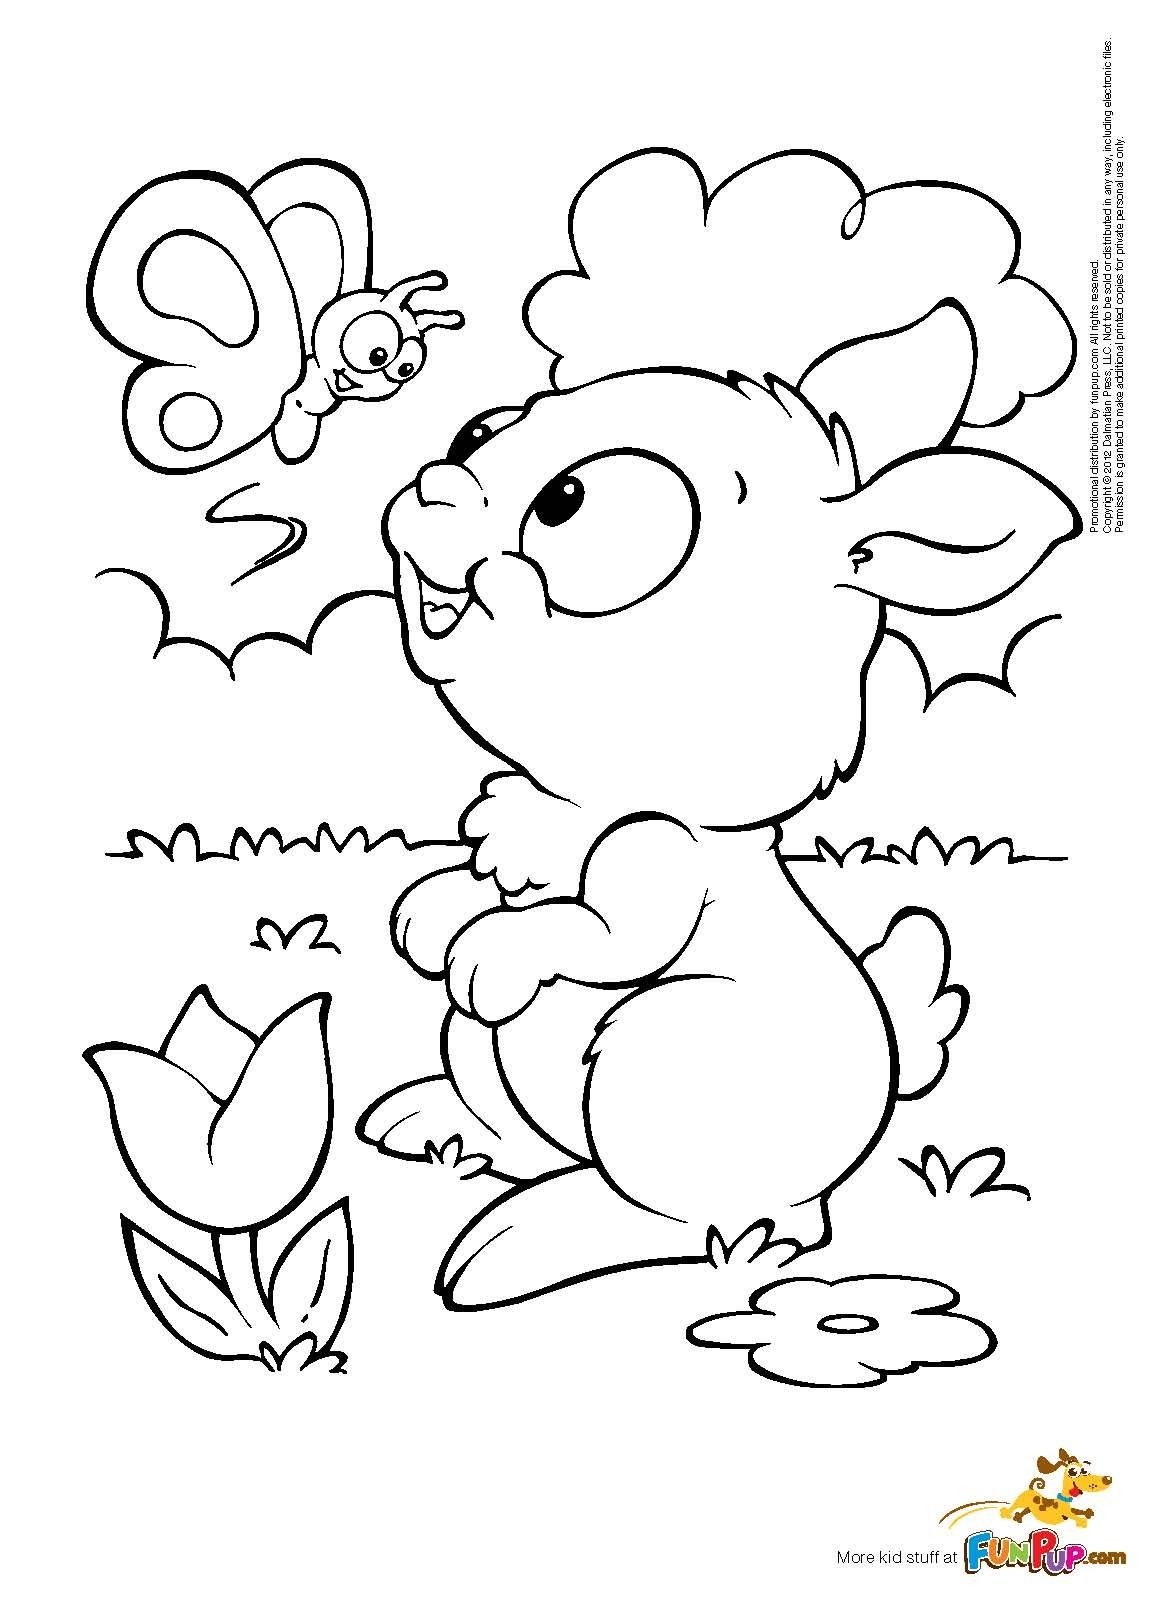 Butterfly Bunny Coloring Page Bunny Coloring Pages Coloring